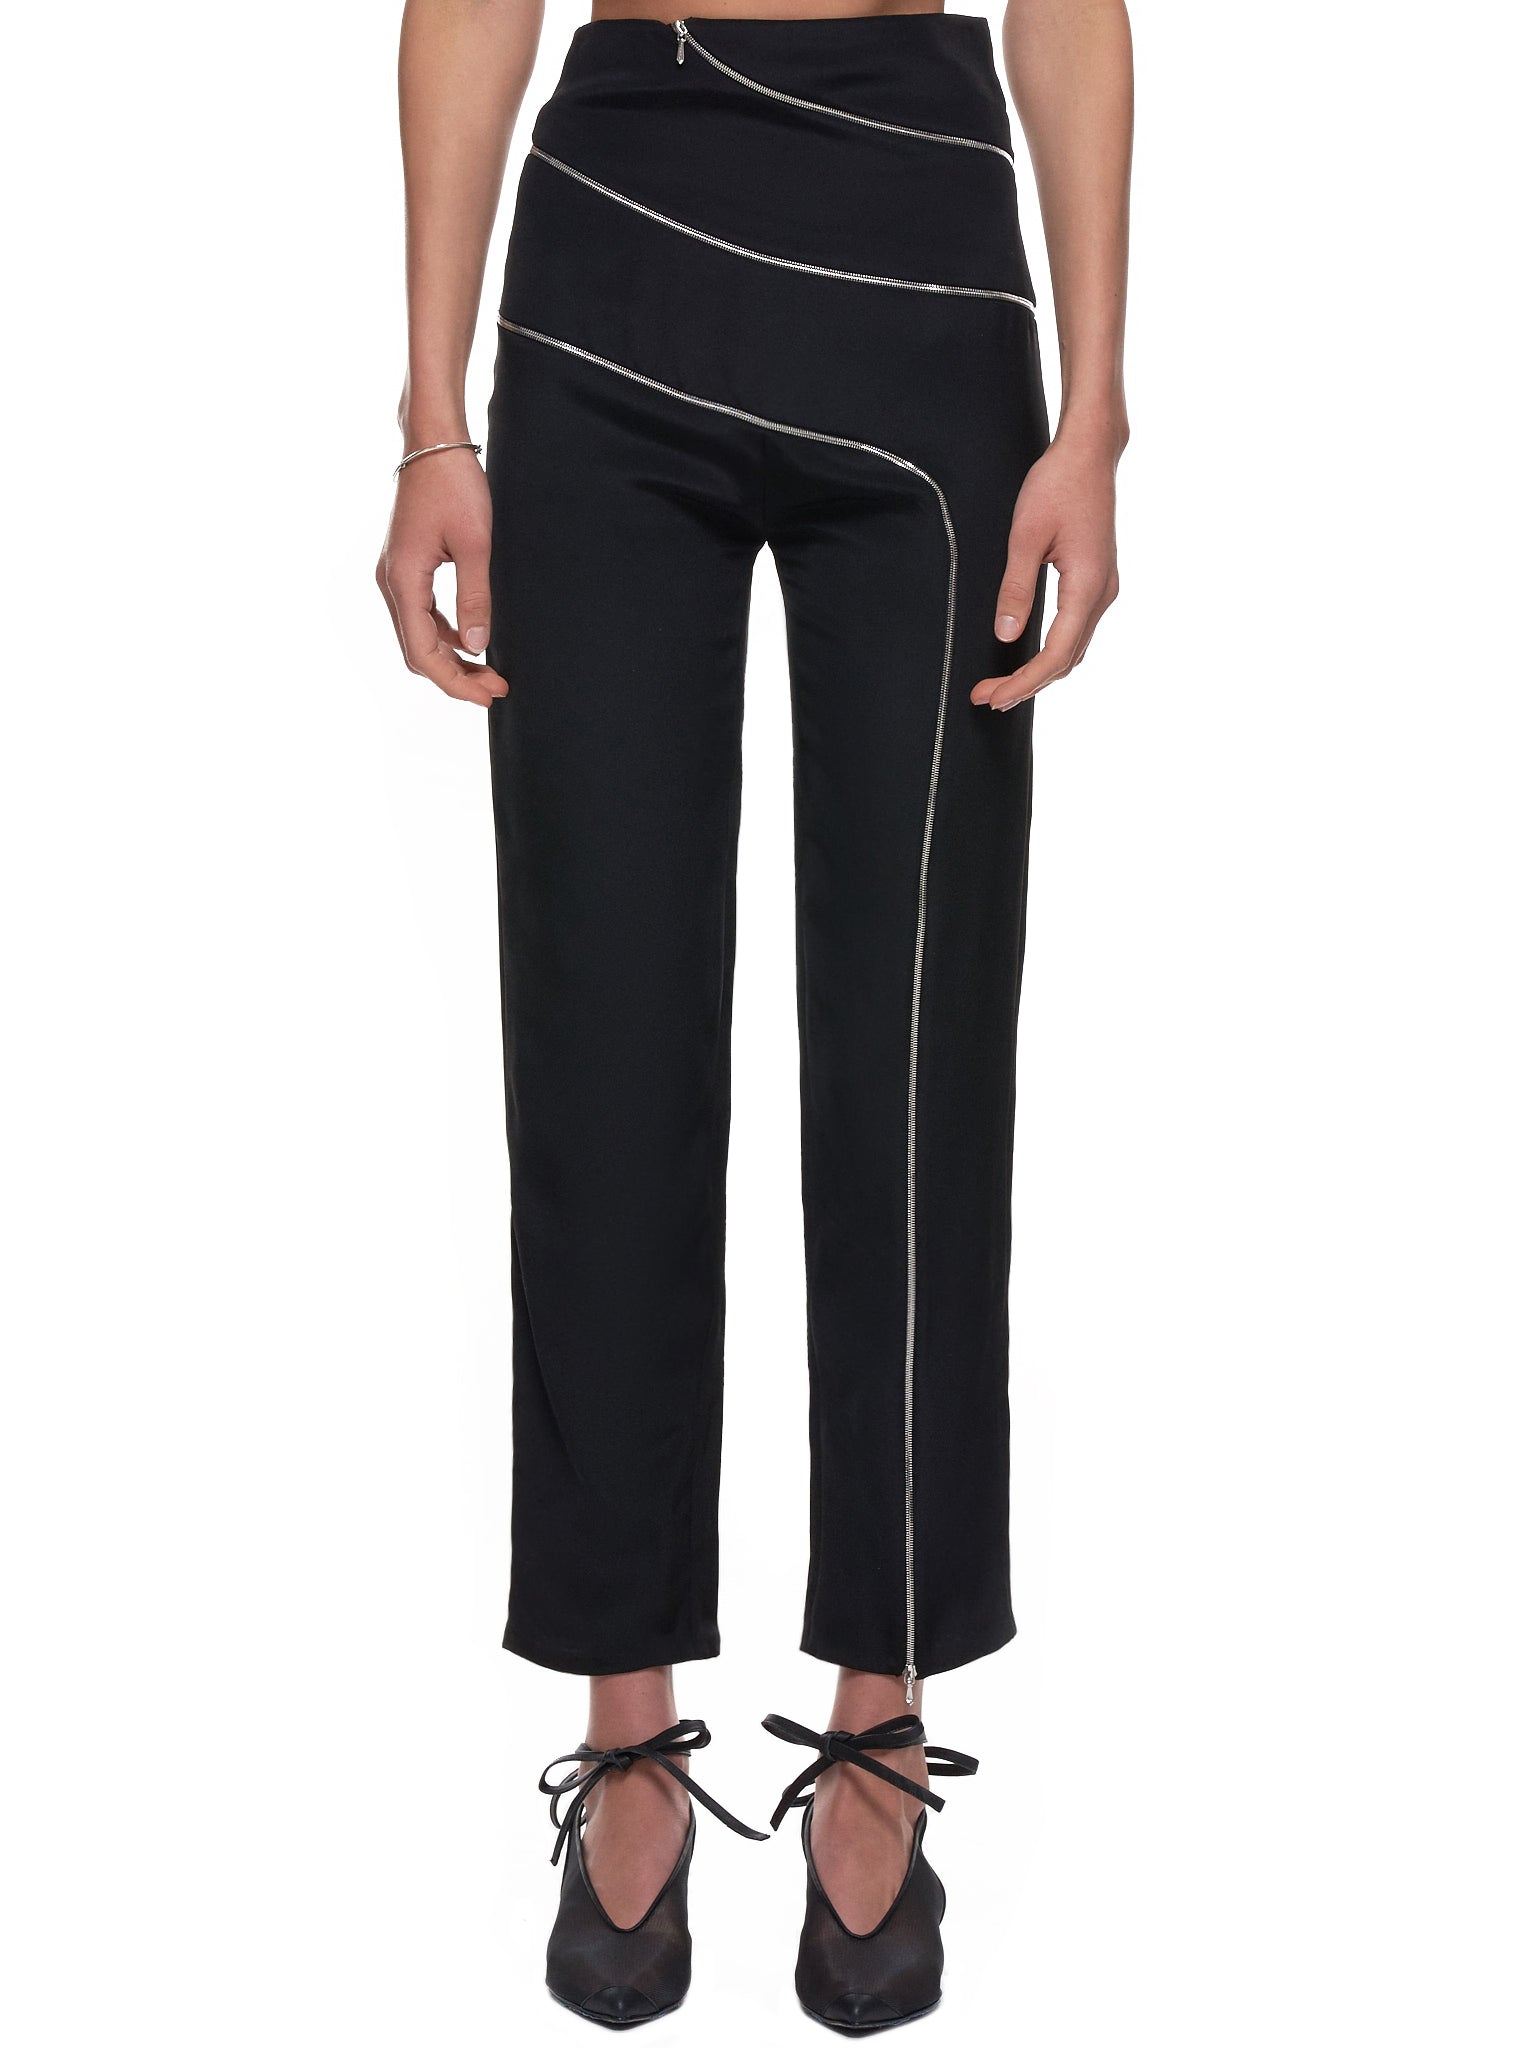 Nicolas Lecourt Mansion Pants - Hlorenzo Front